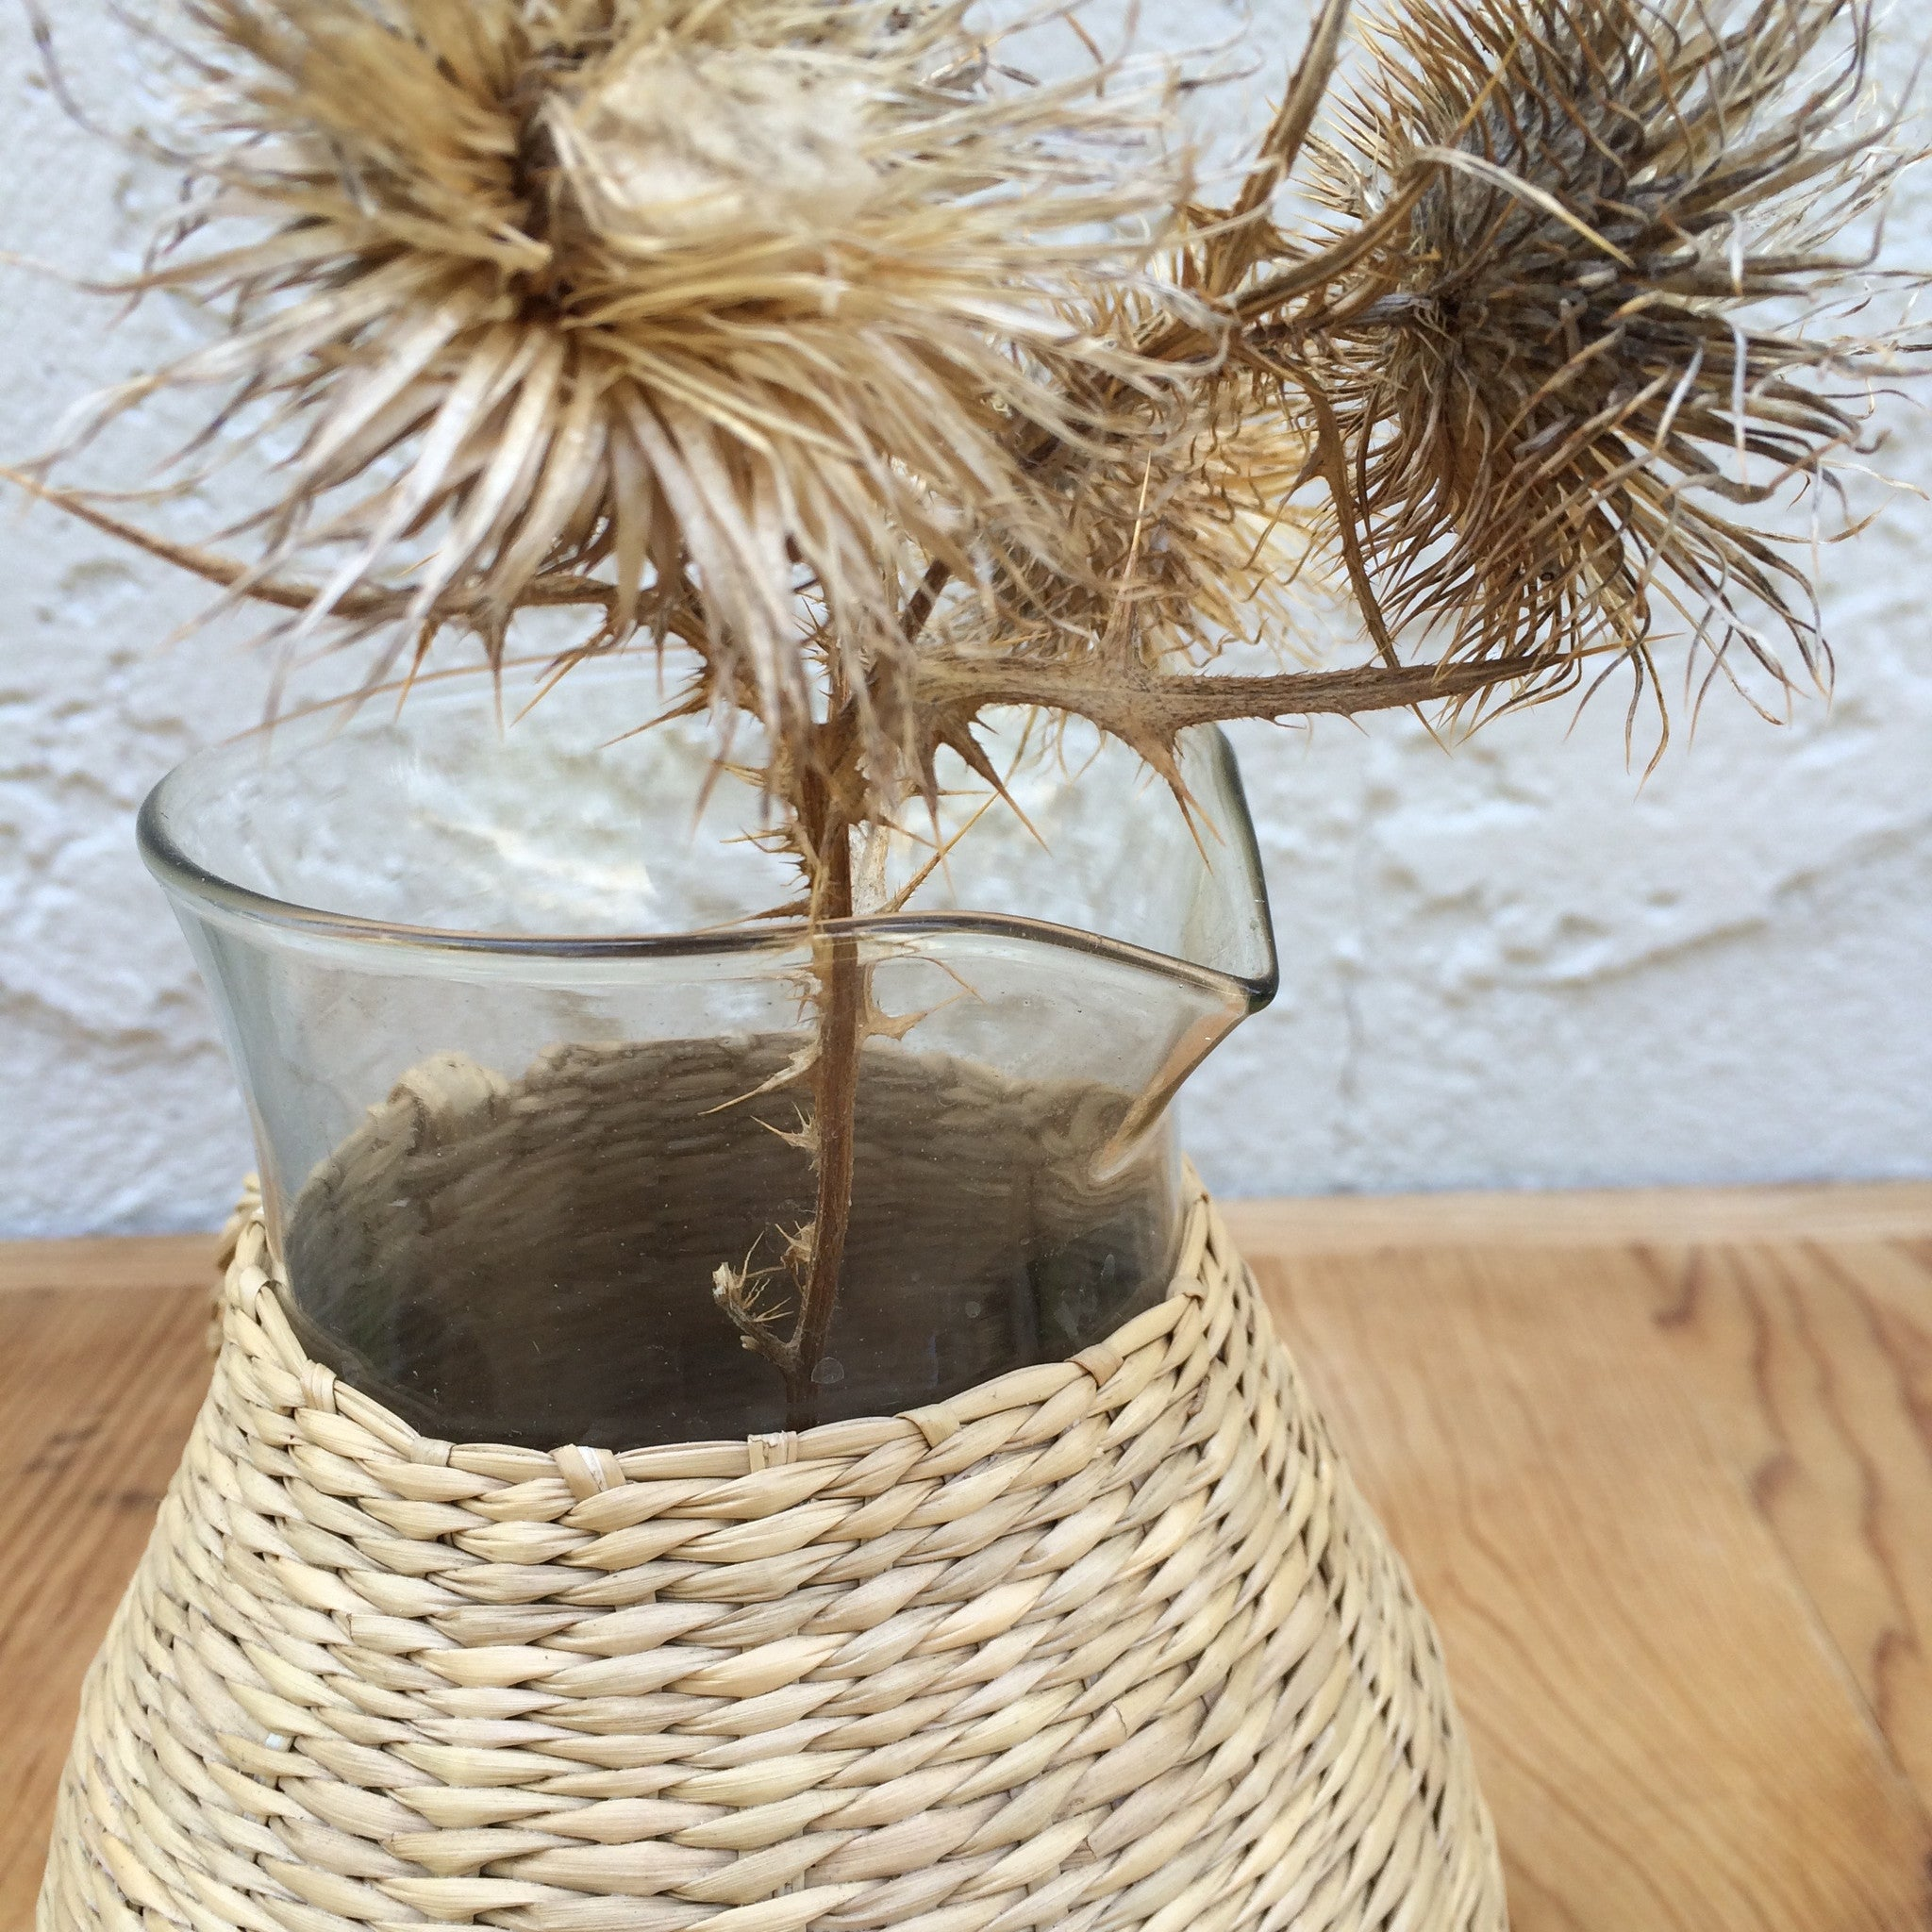 wicker and glass pitcher